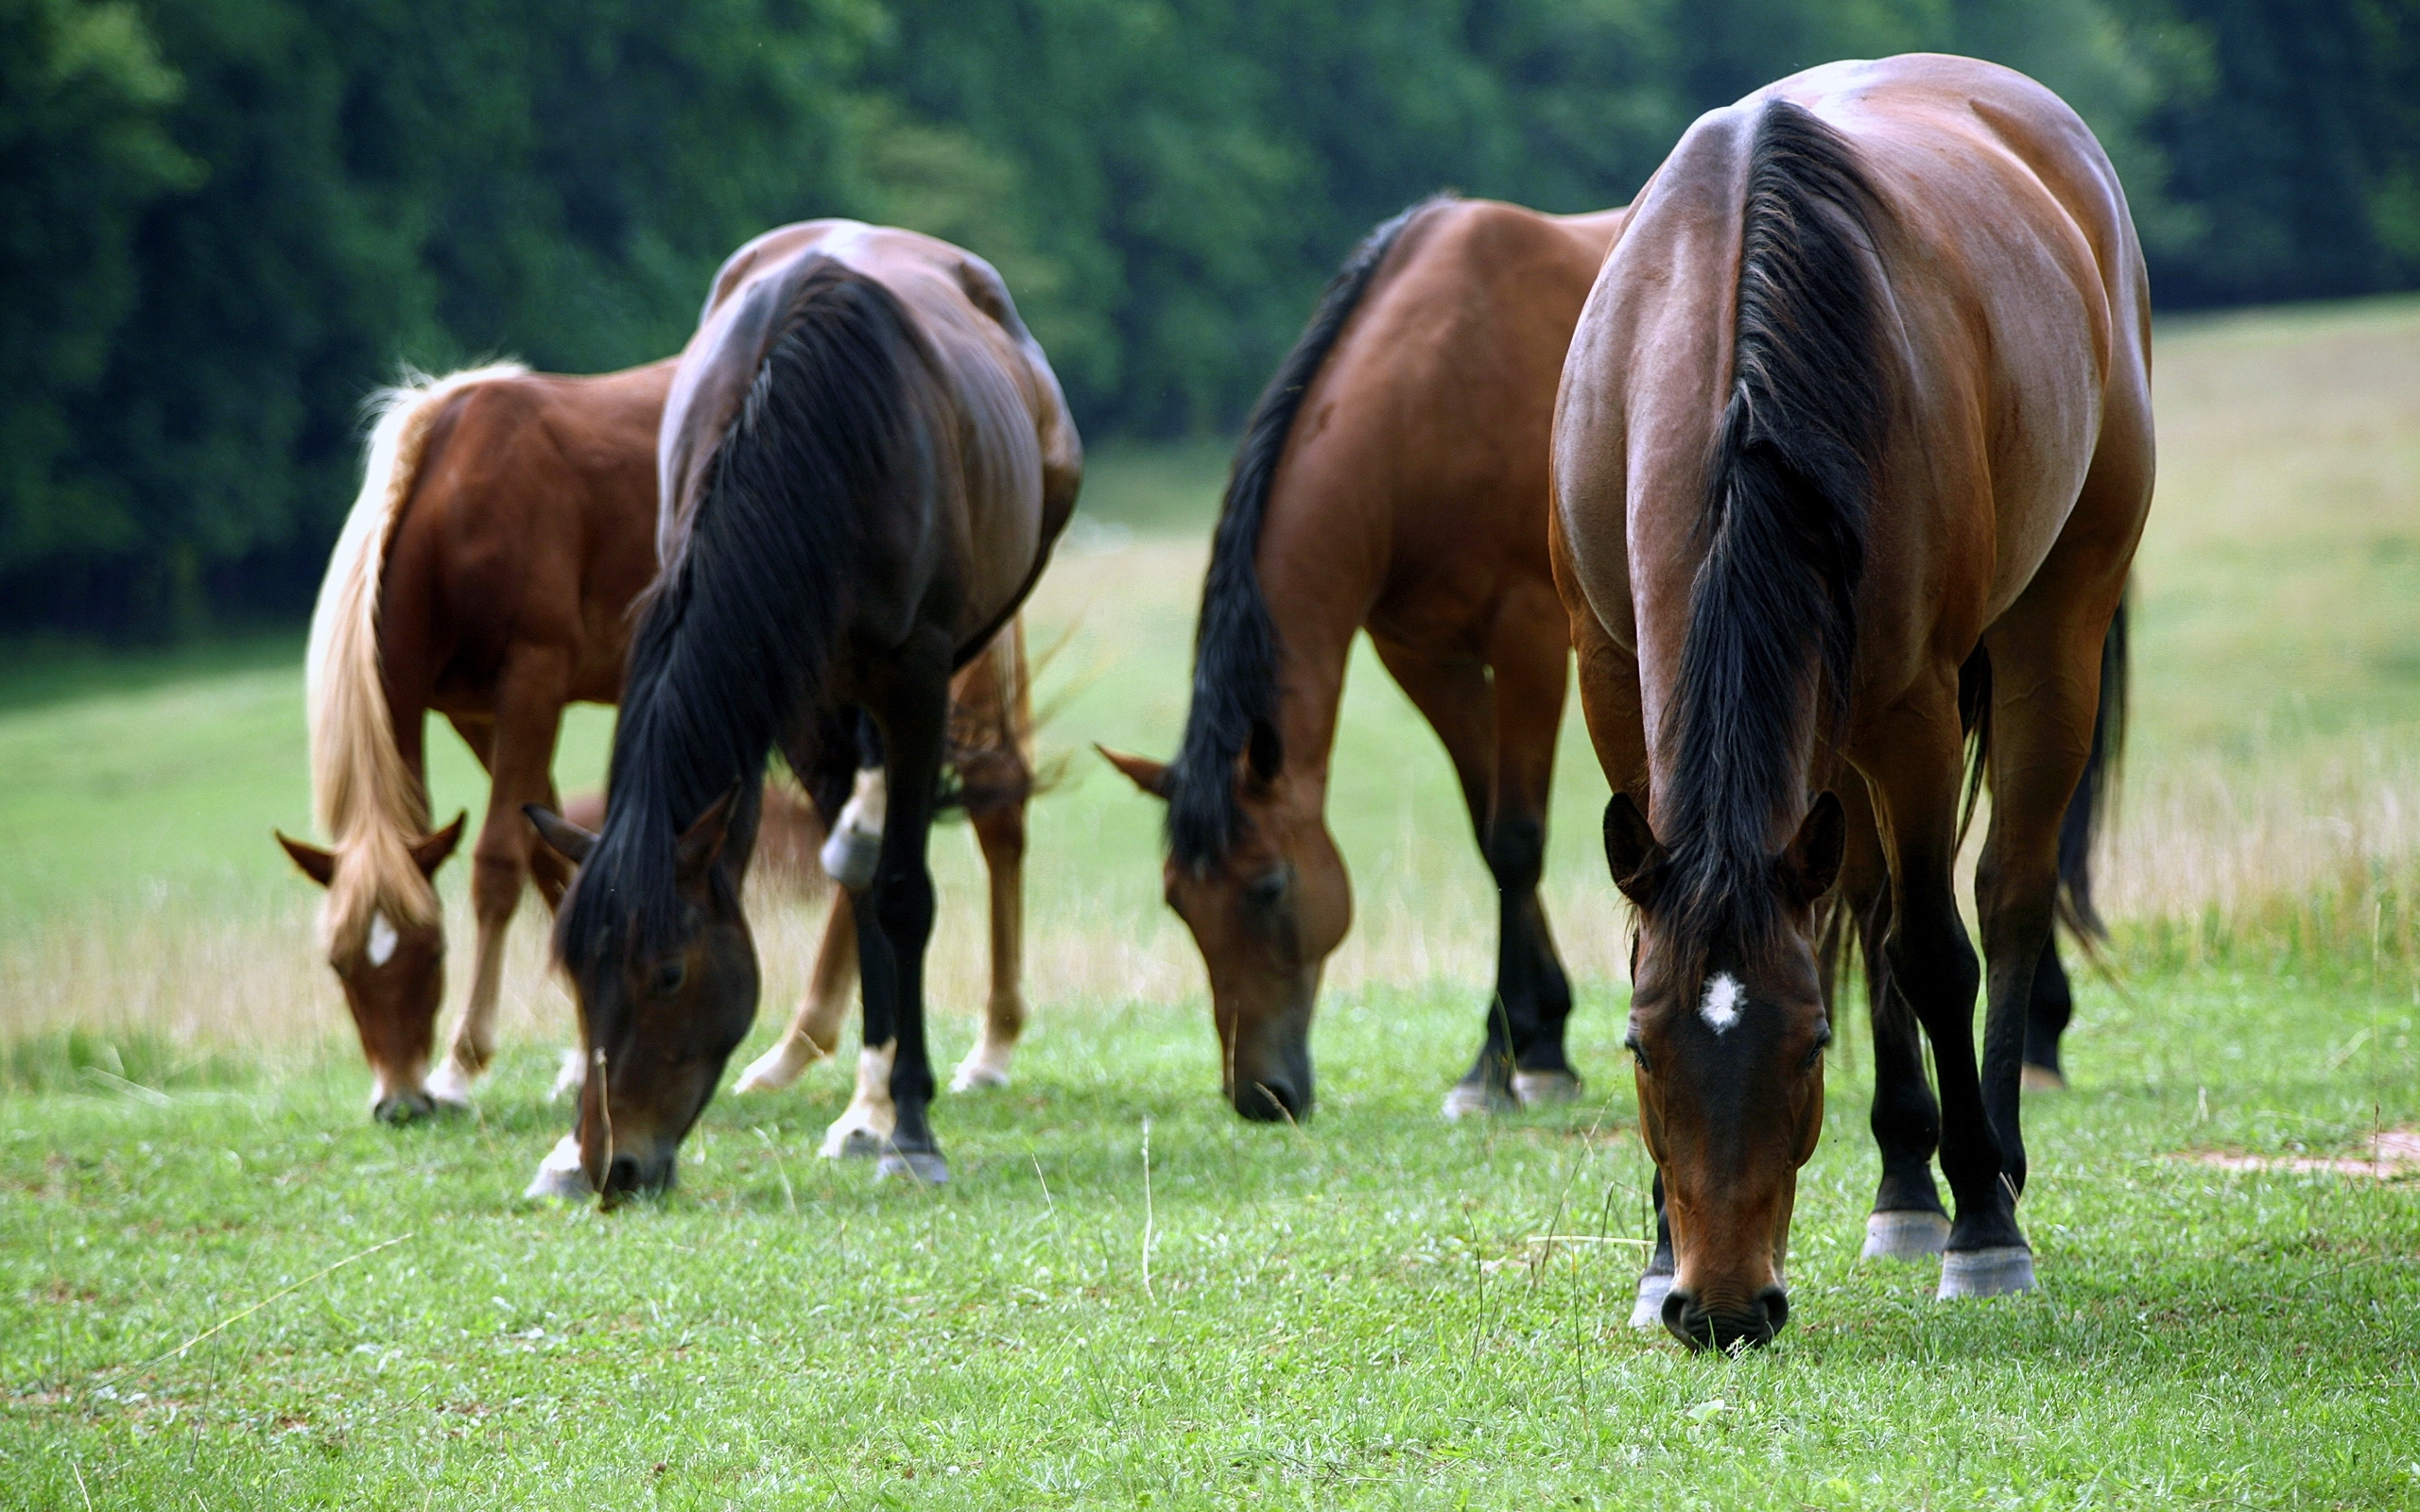 48469 download wallpaper Animals, Horses screensavers and pictures for free